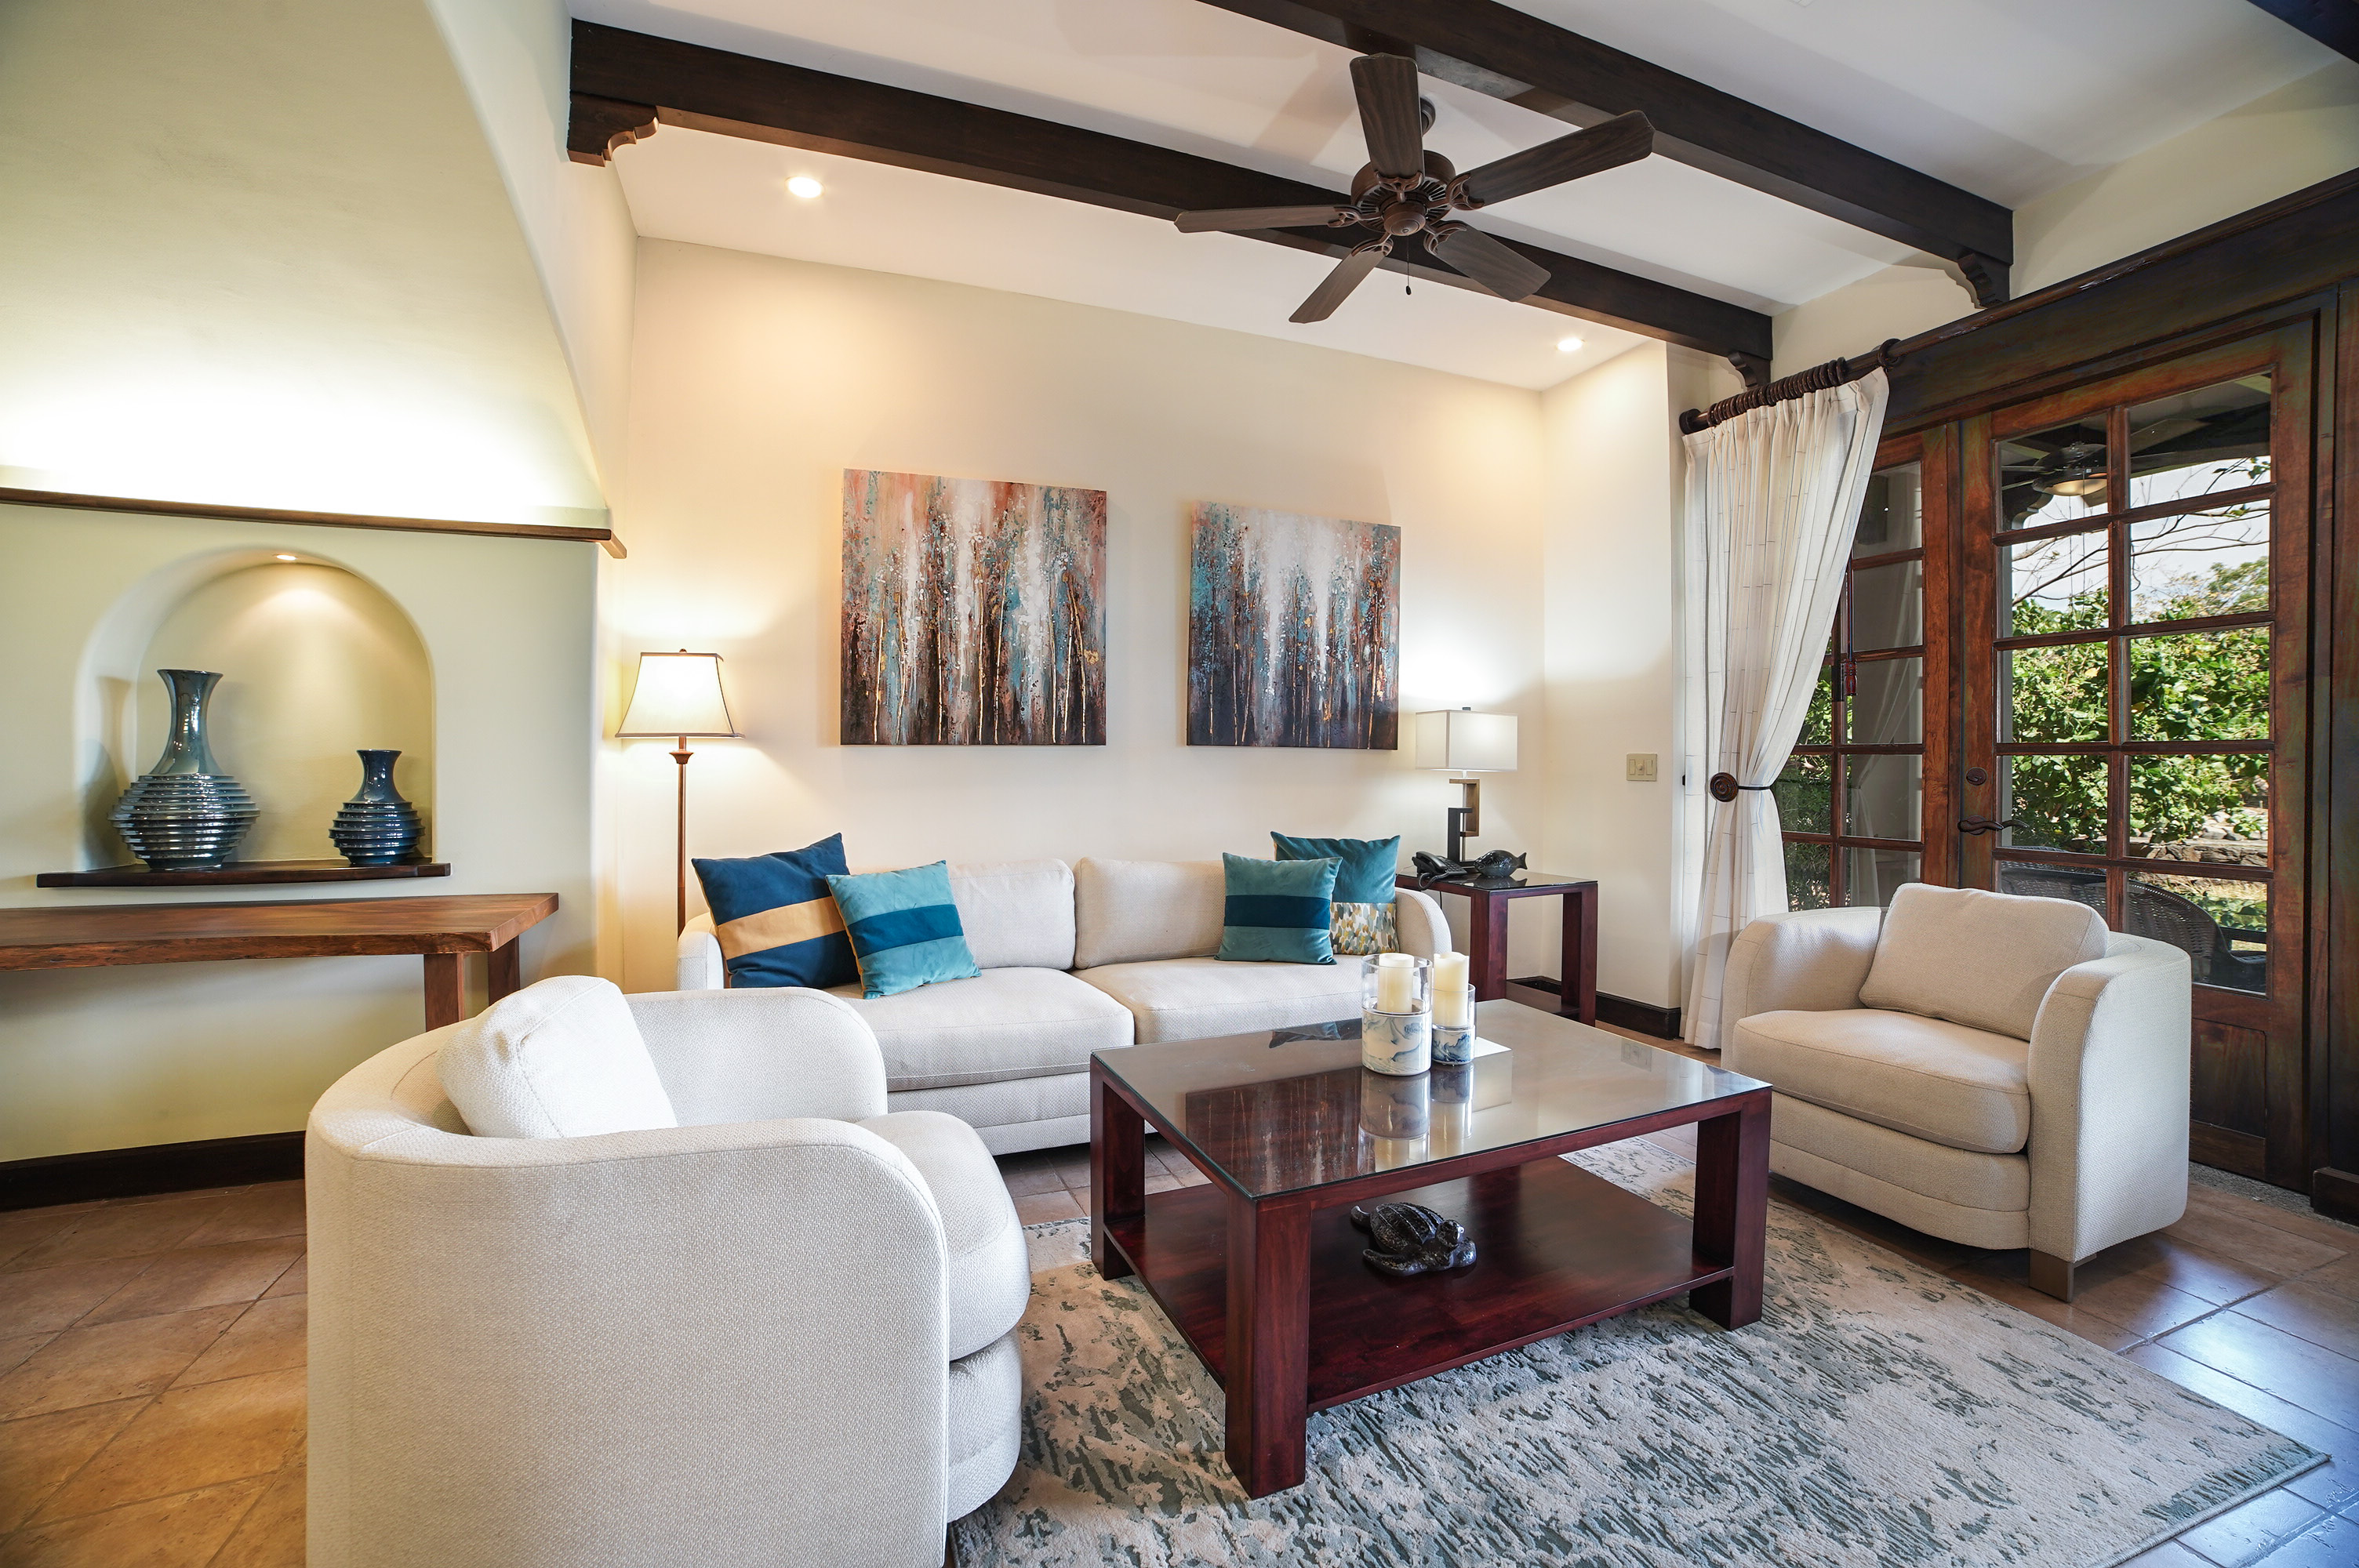 Relax with the family in the main living room